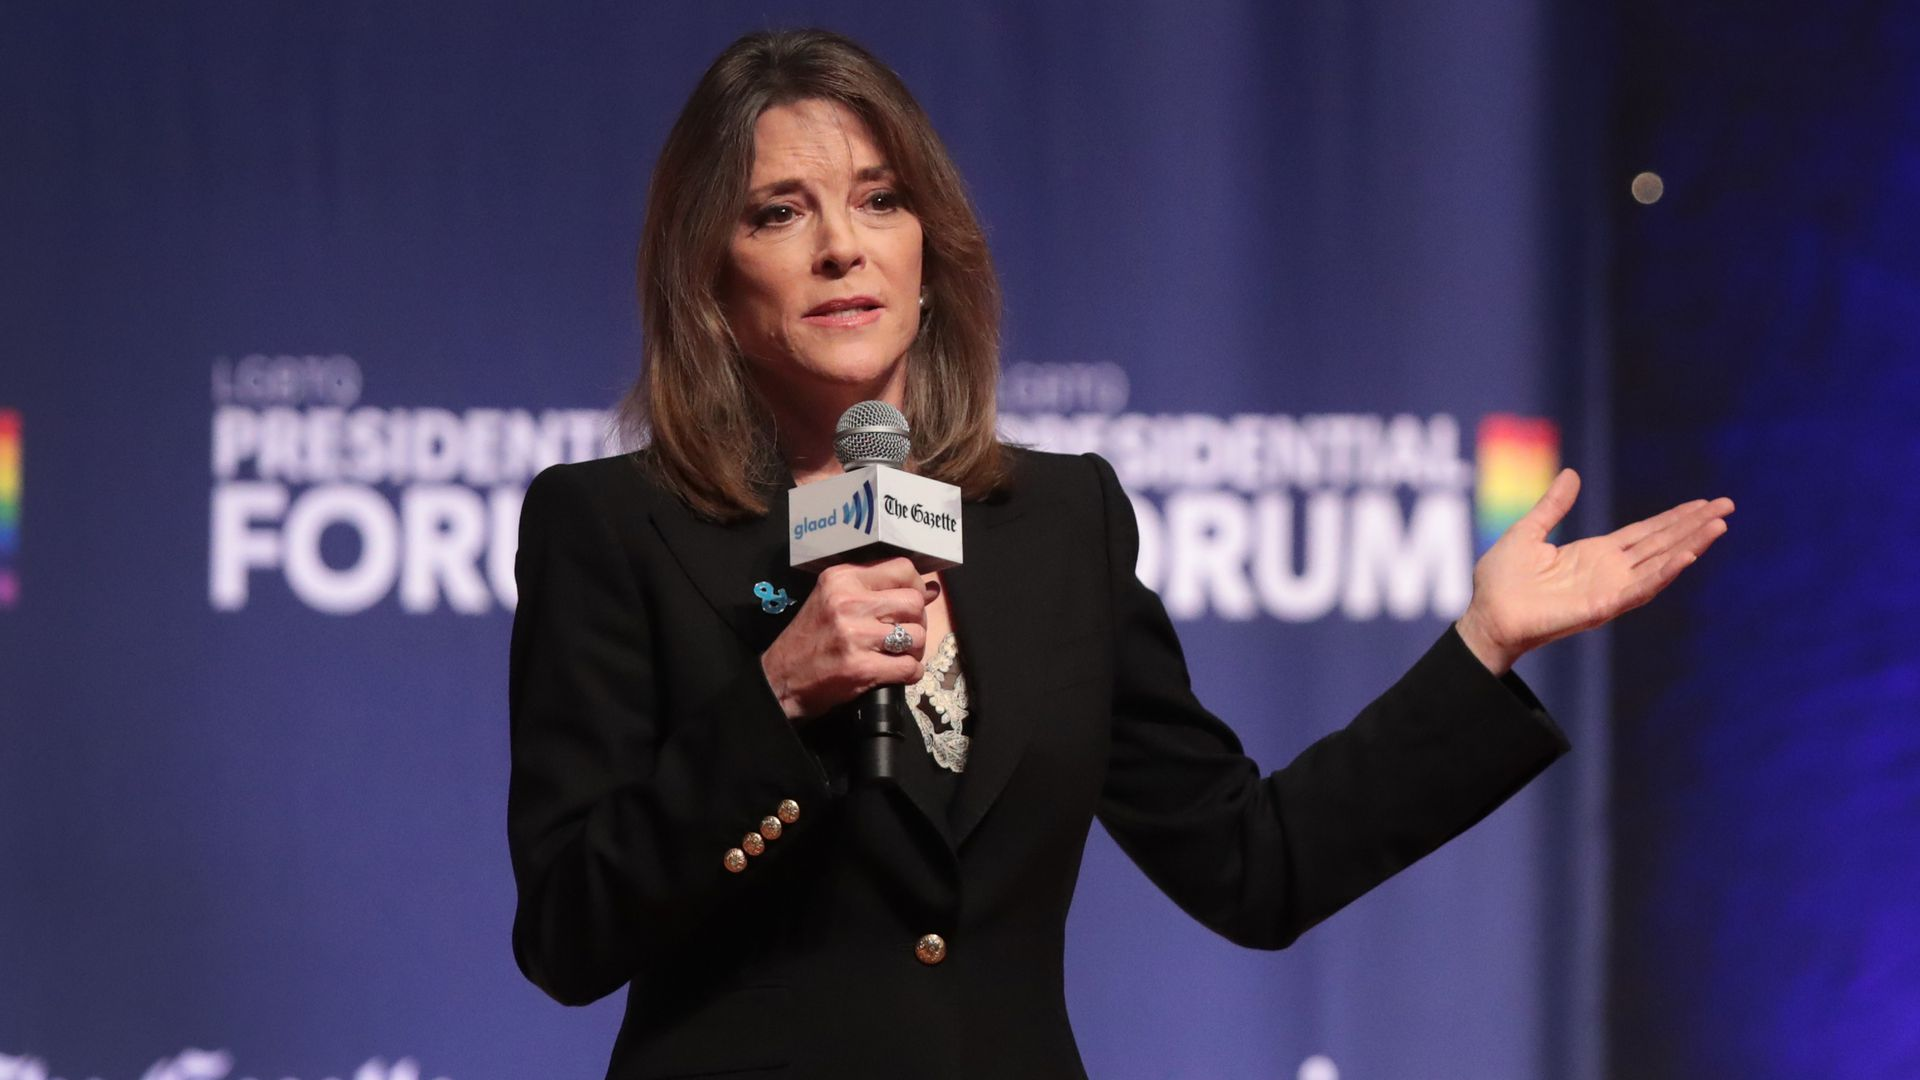 Marianne Williamson holds a microphone.